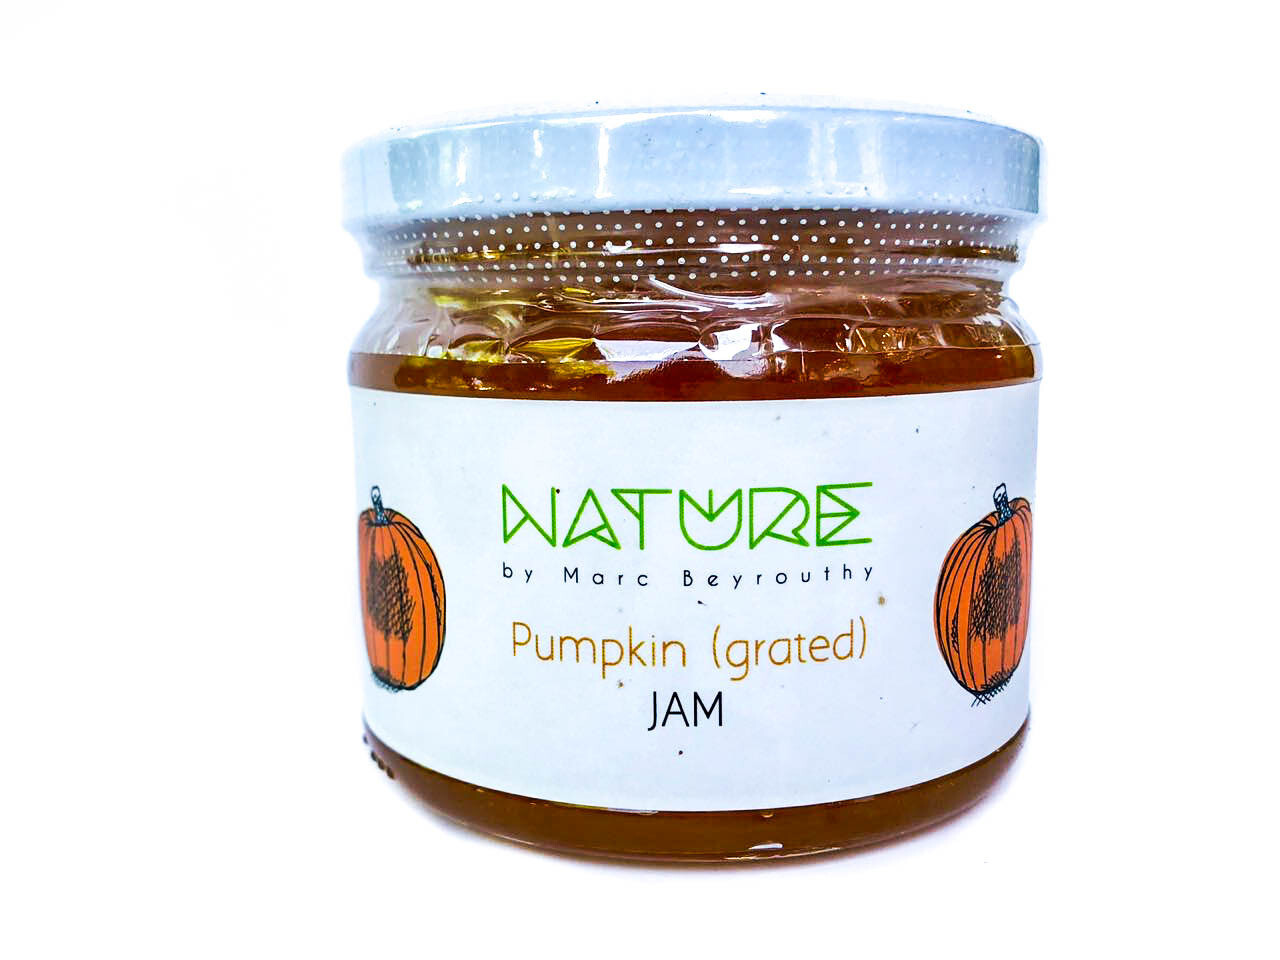 Pumpkin Grated Jam مربى اليقطين المبشور (Jar) - Nature by Marc Beyrouthy